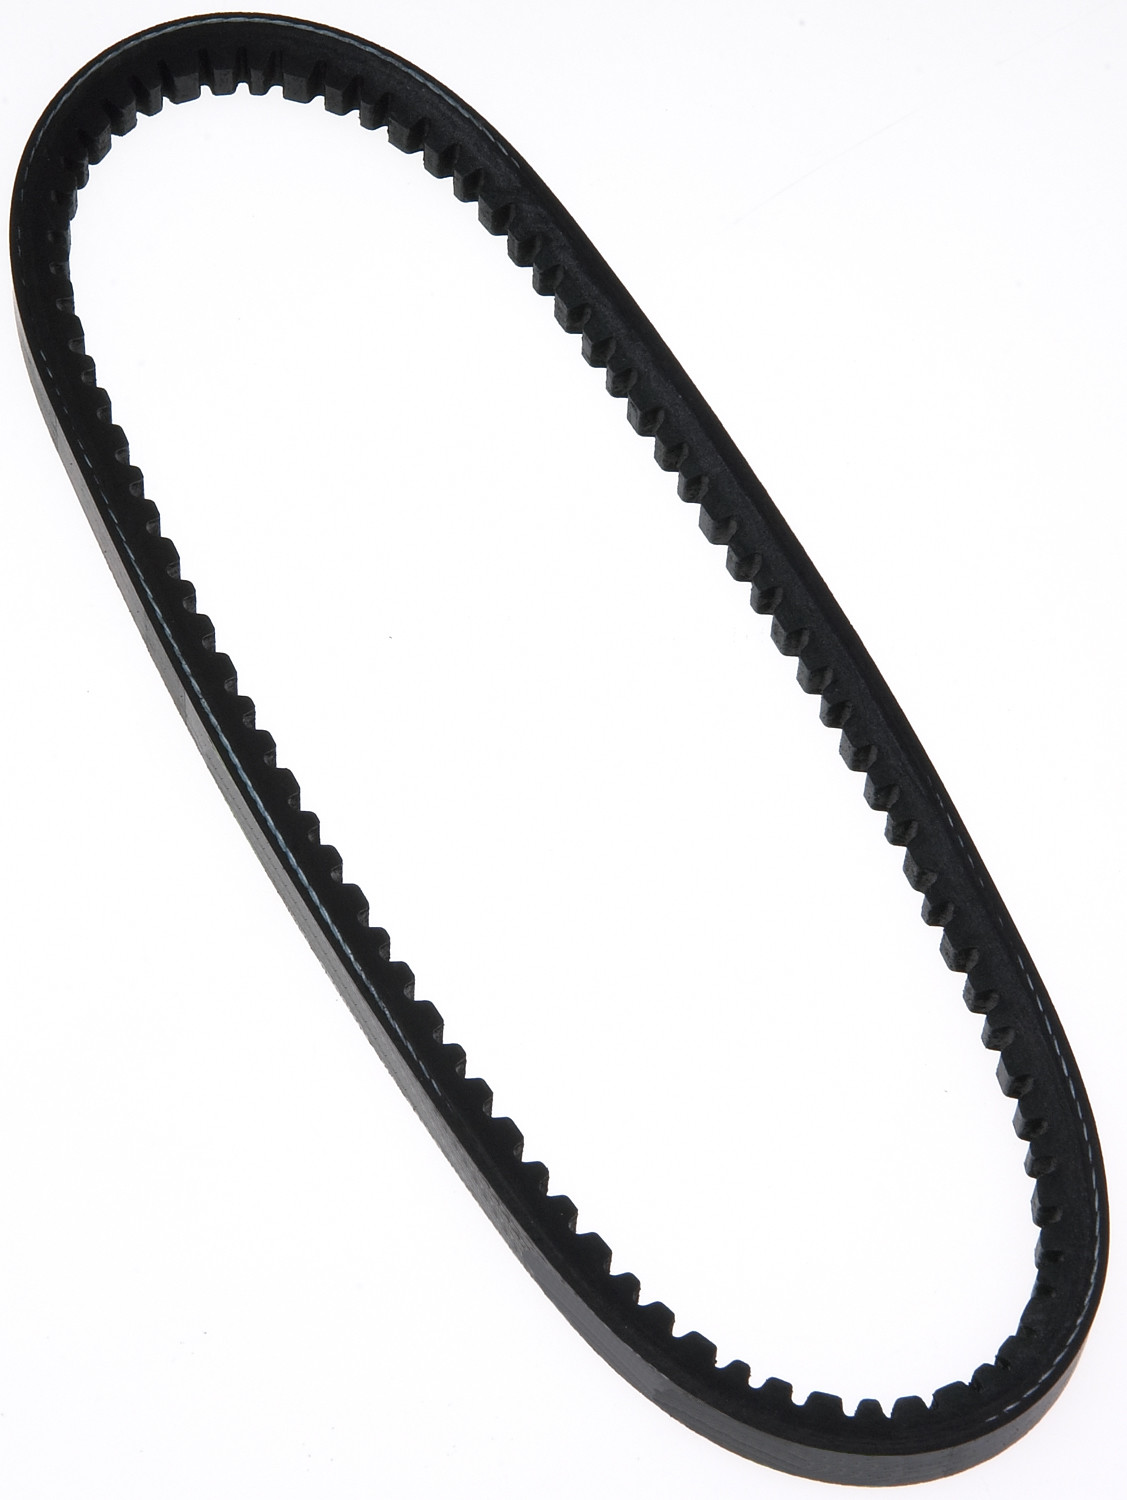 ROADMAX - High Capacity V-belt(standard) - RMX 17330AP